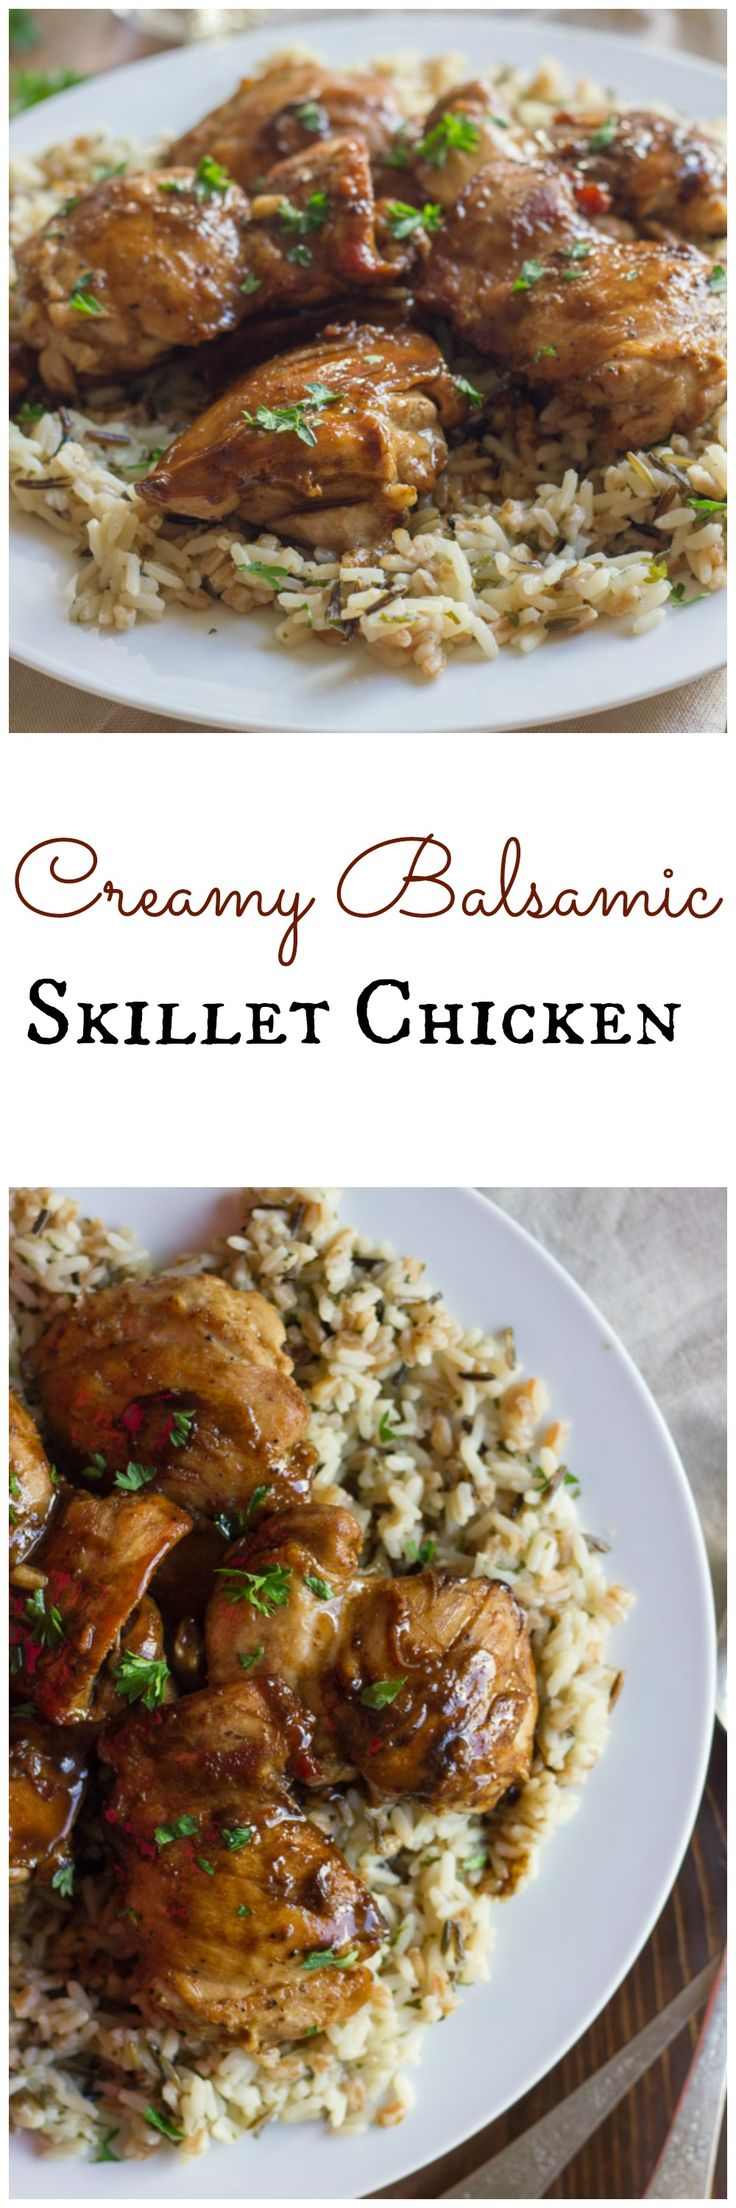 Creamy Balsamic Skillet Chicken